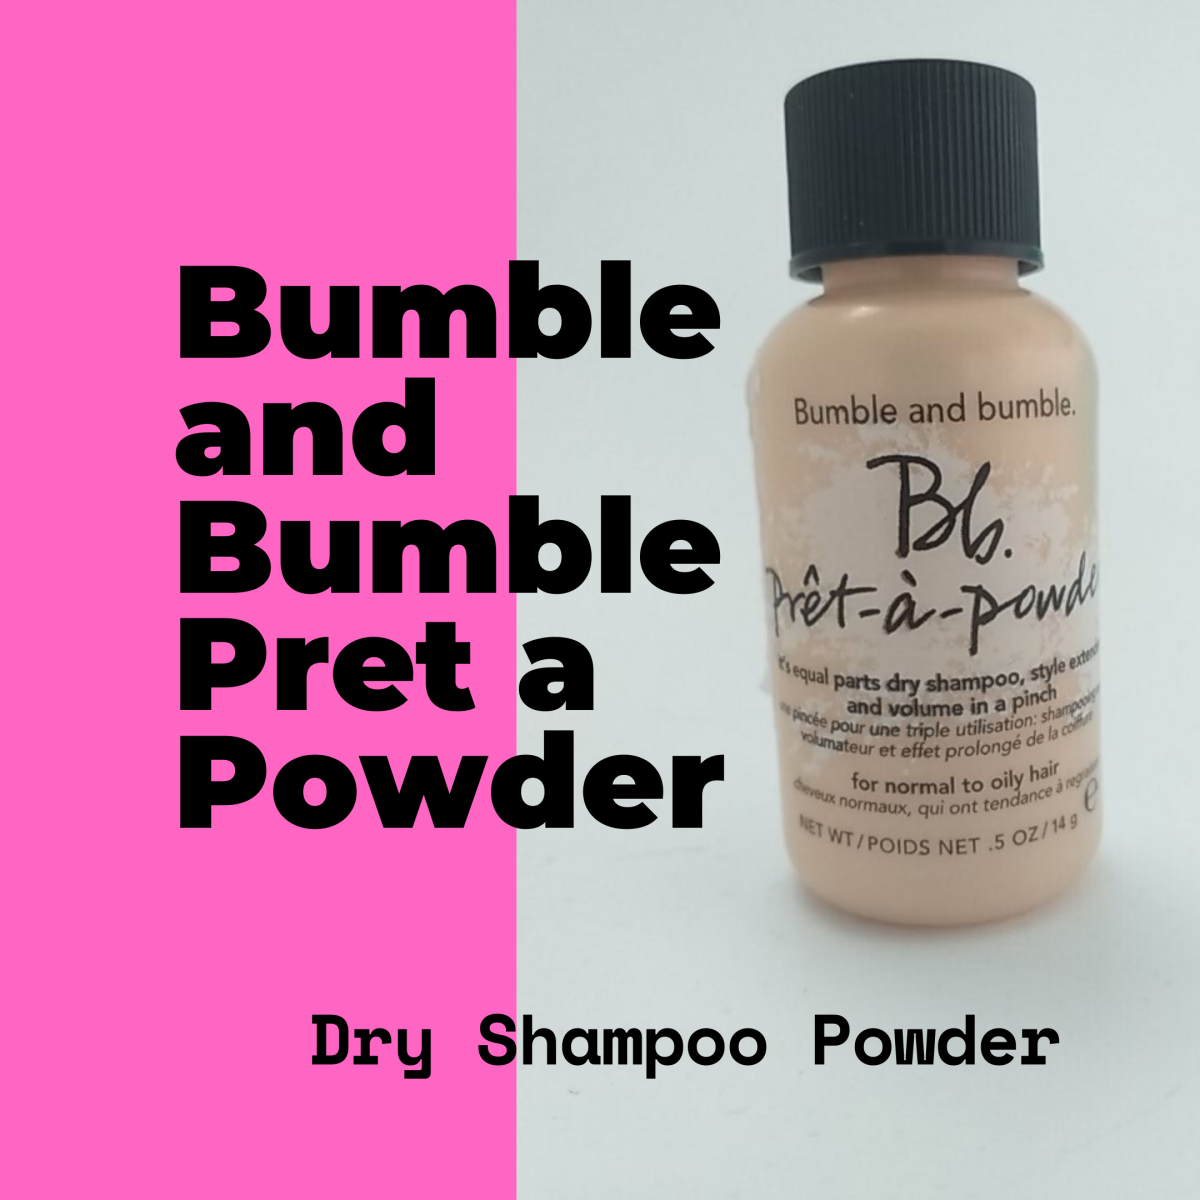 Bumble and Bumble Pret a Powder dry shampoo is designed for all hair types